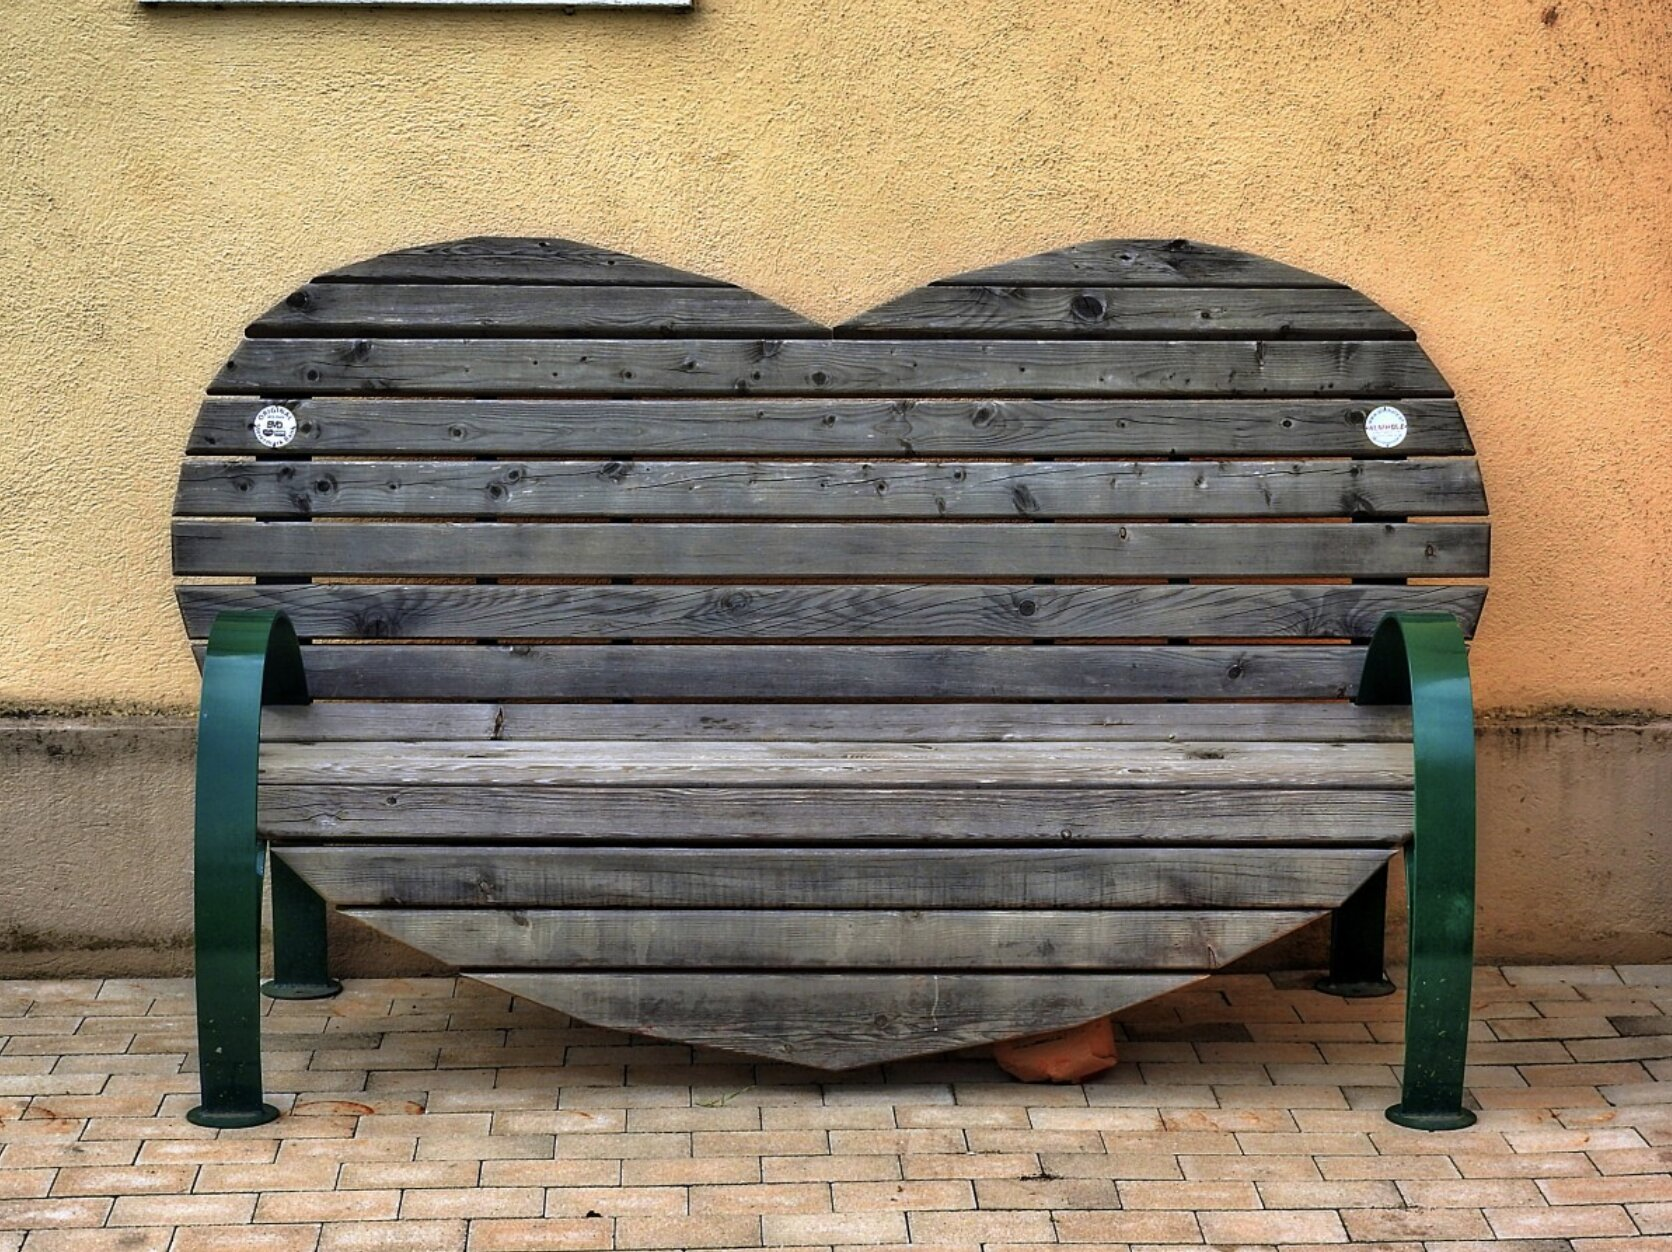 Heart shaped bench